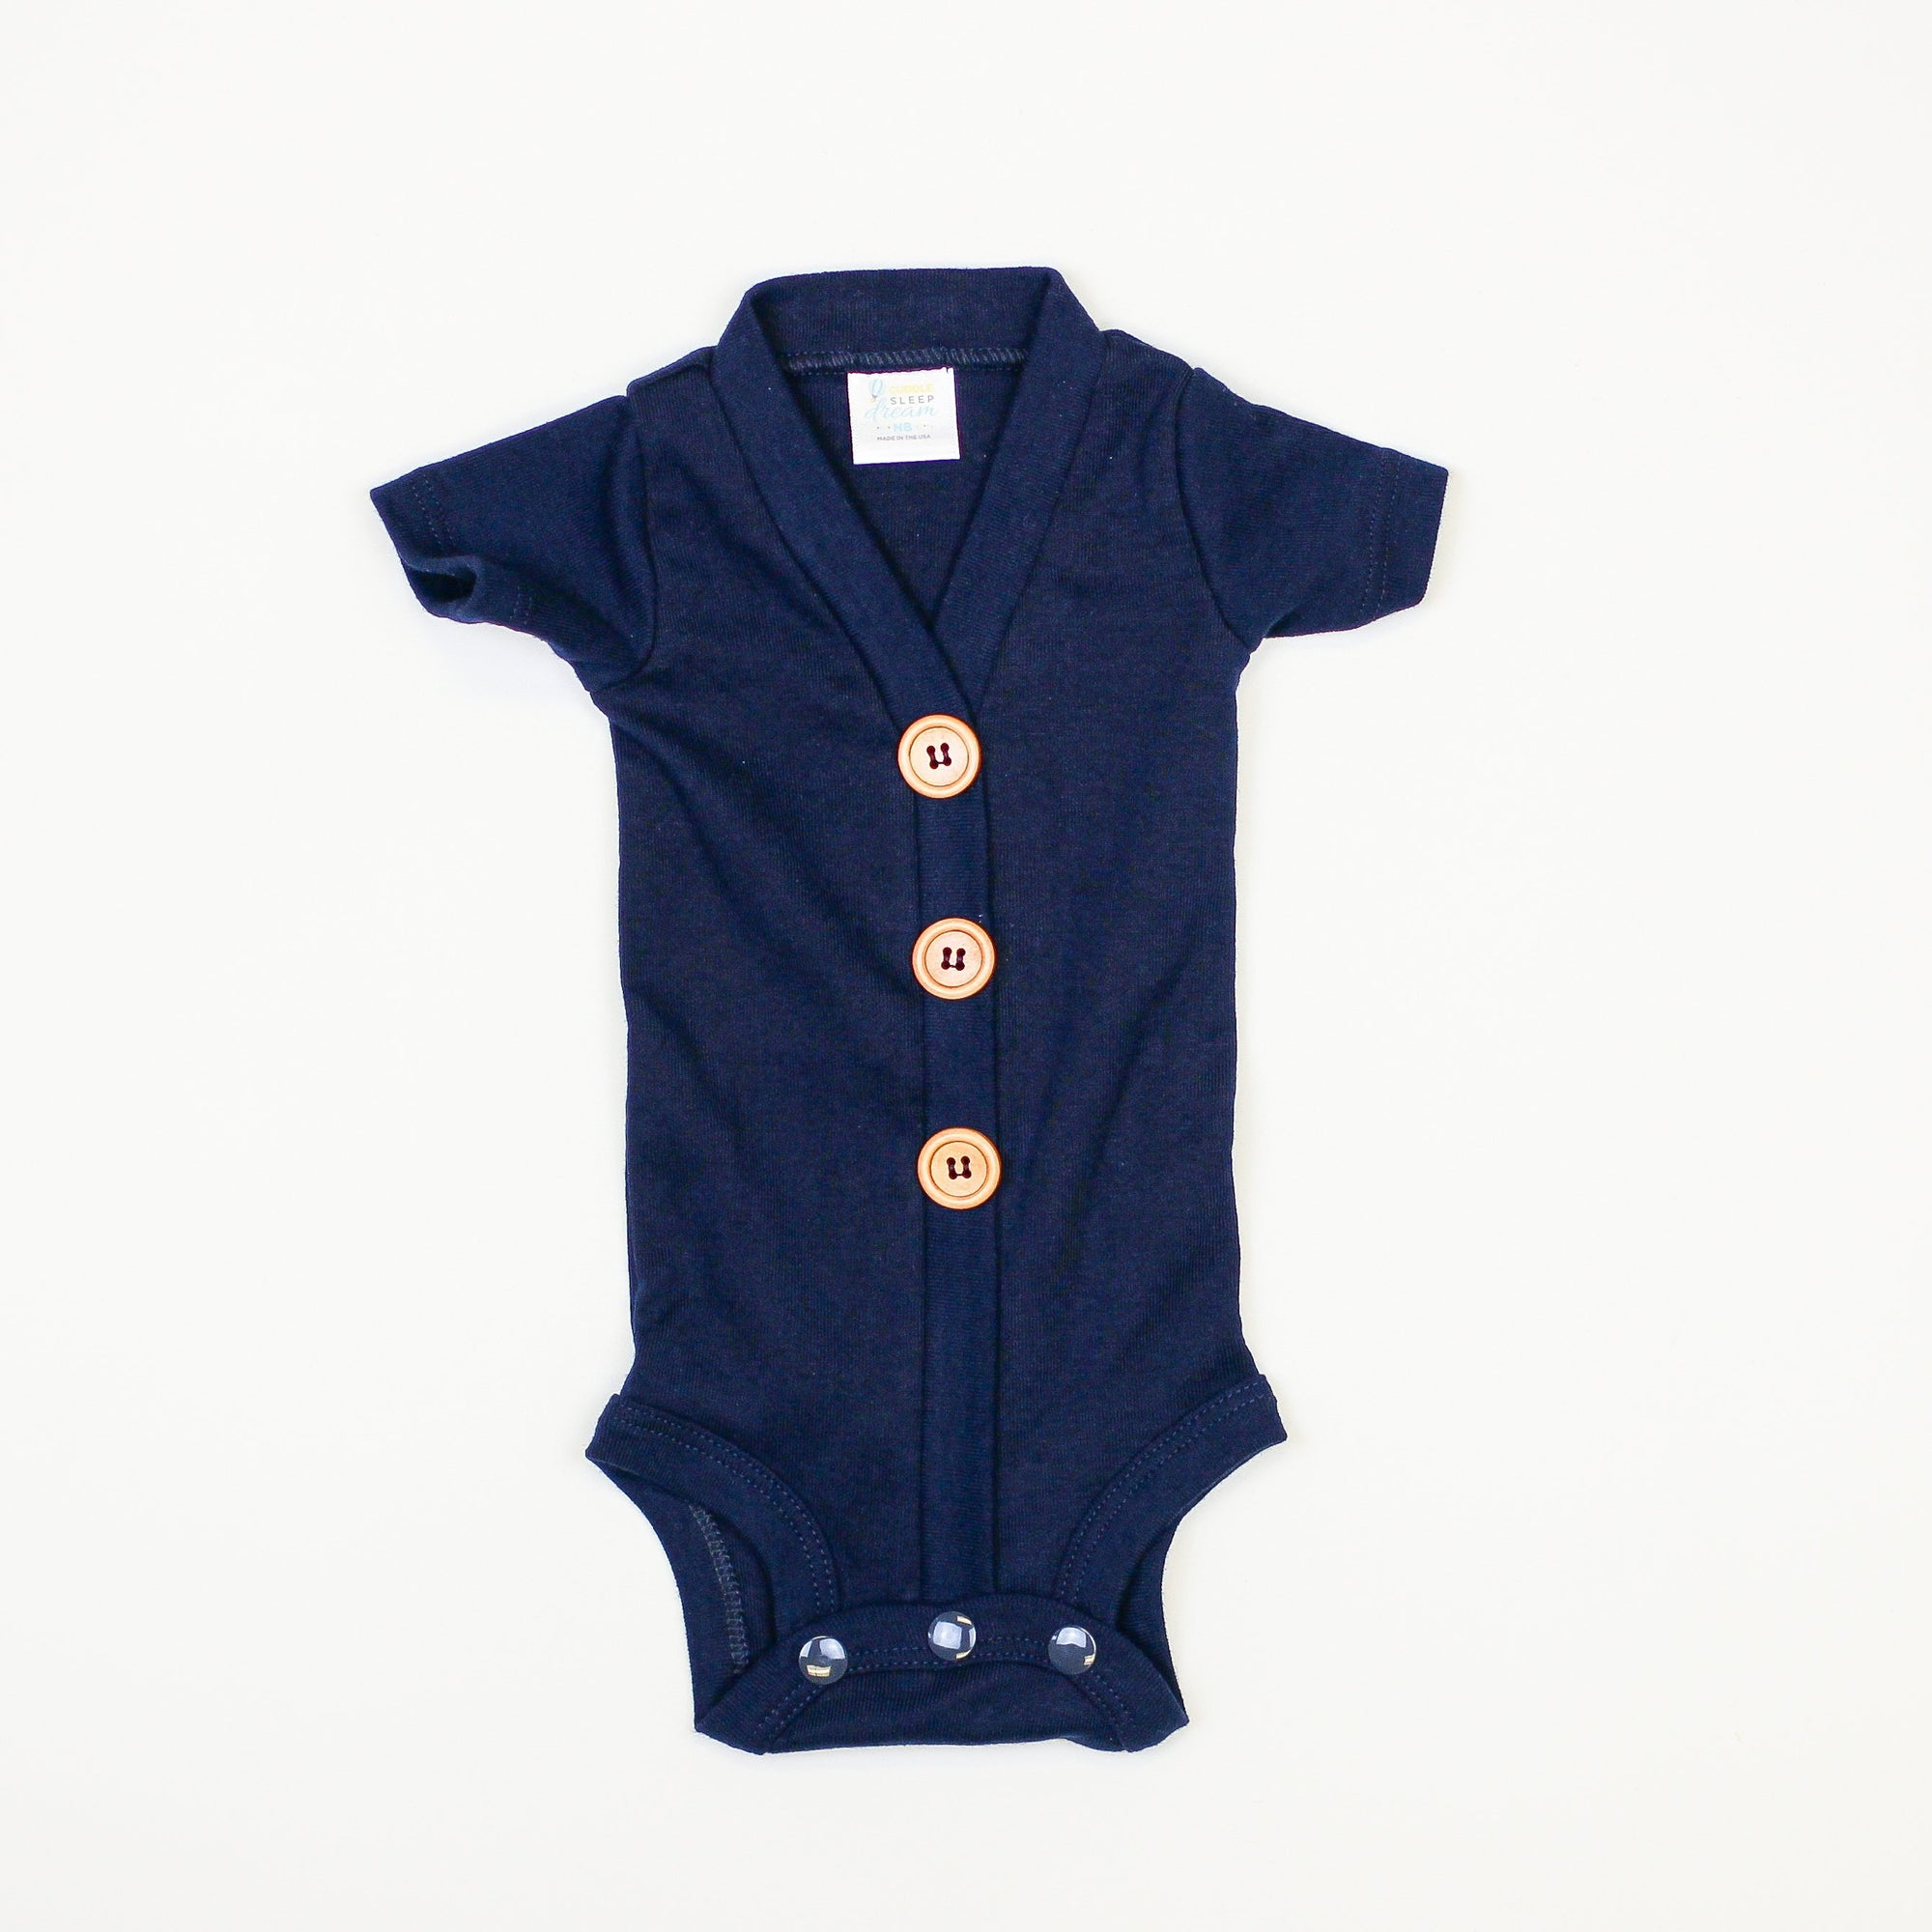 Cuddle Sleep Dream Cardigan Navy Cardisuit - Short Sleeve